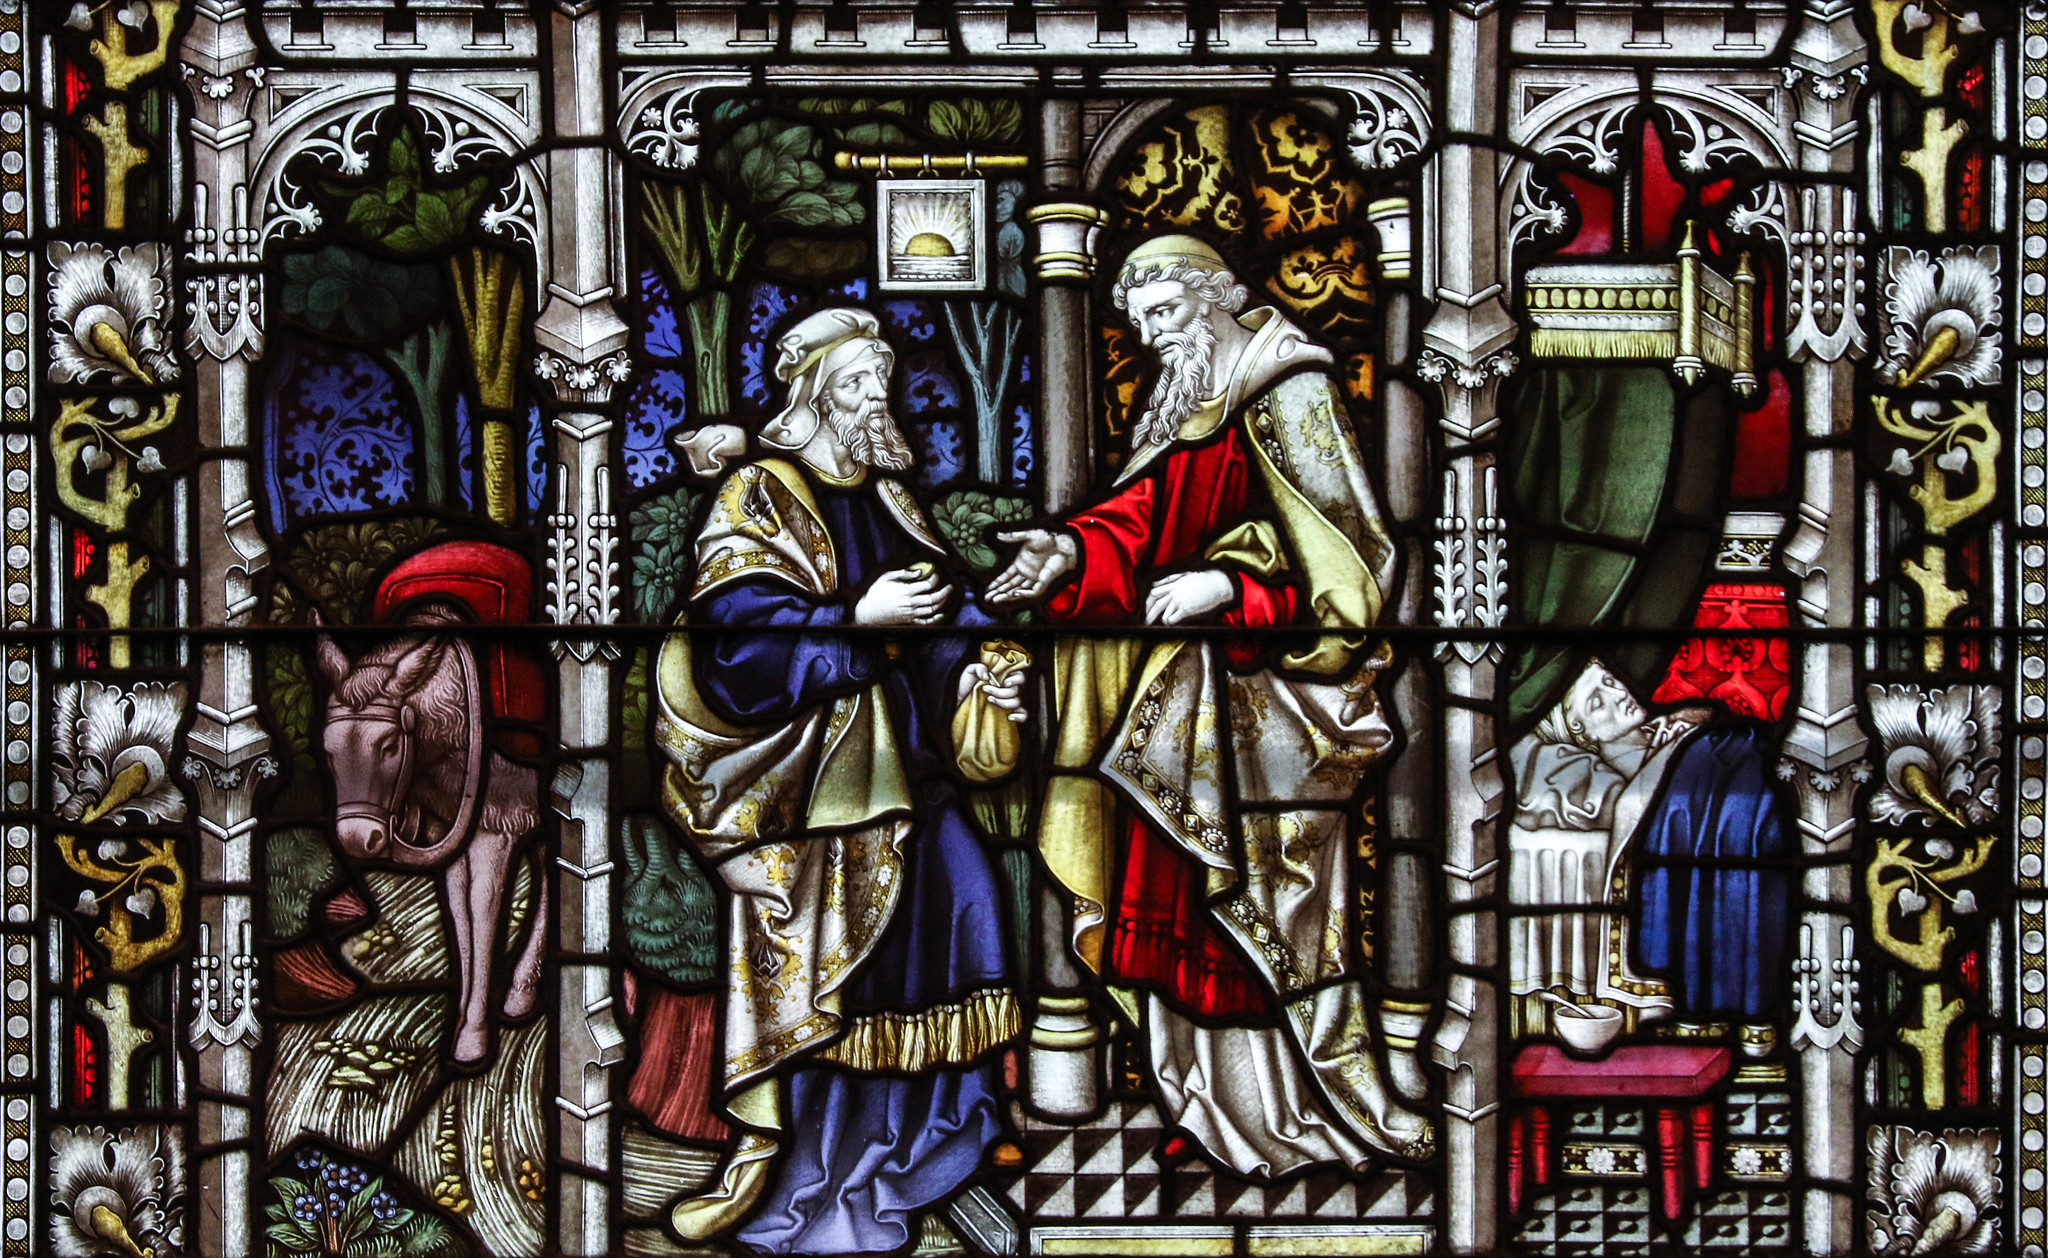 The Good Samaritan - Stained glass from Old St Paul's church in Baltimore